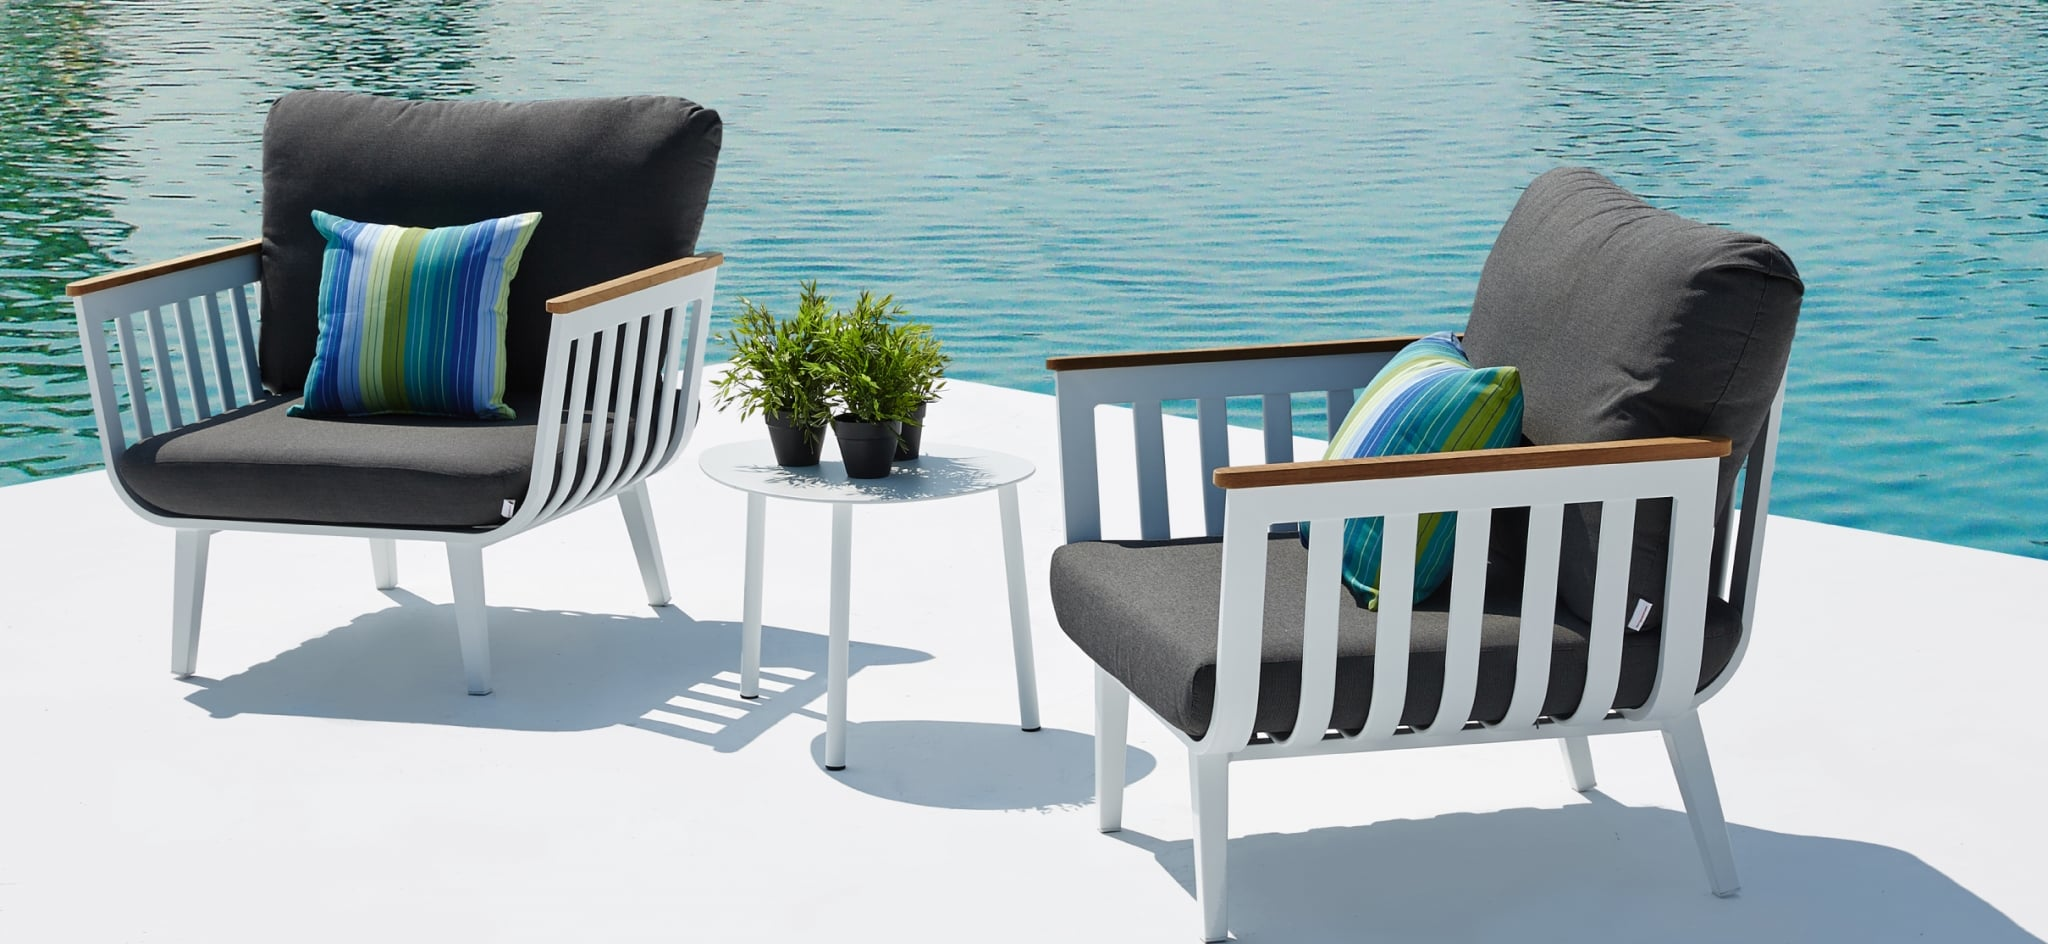 Sweden Outdoor Furniture